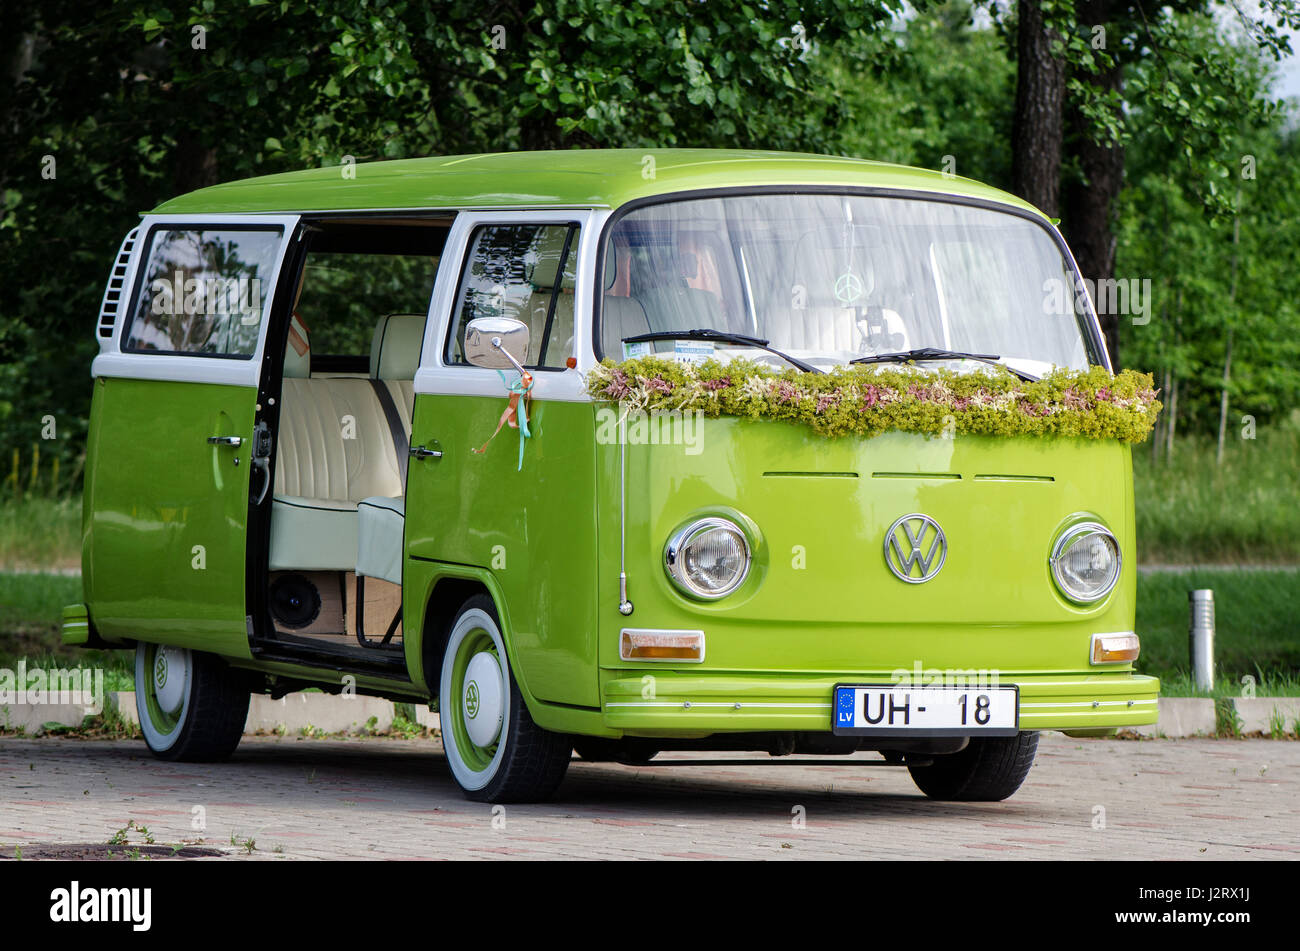 Volkswagen Bus Stock P...